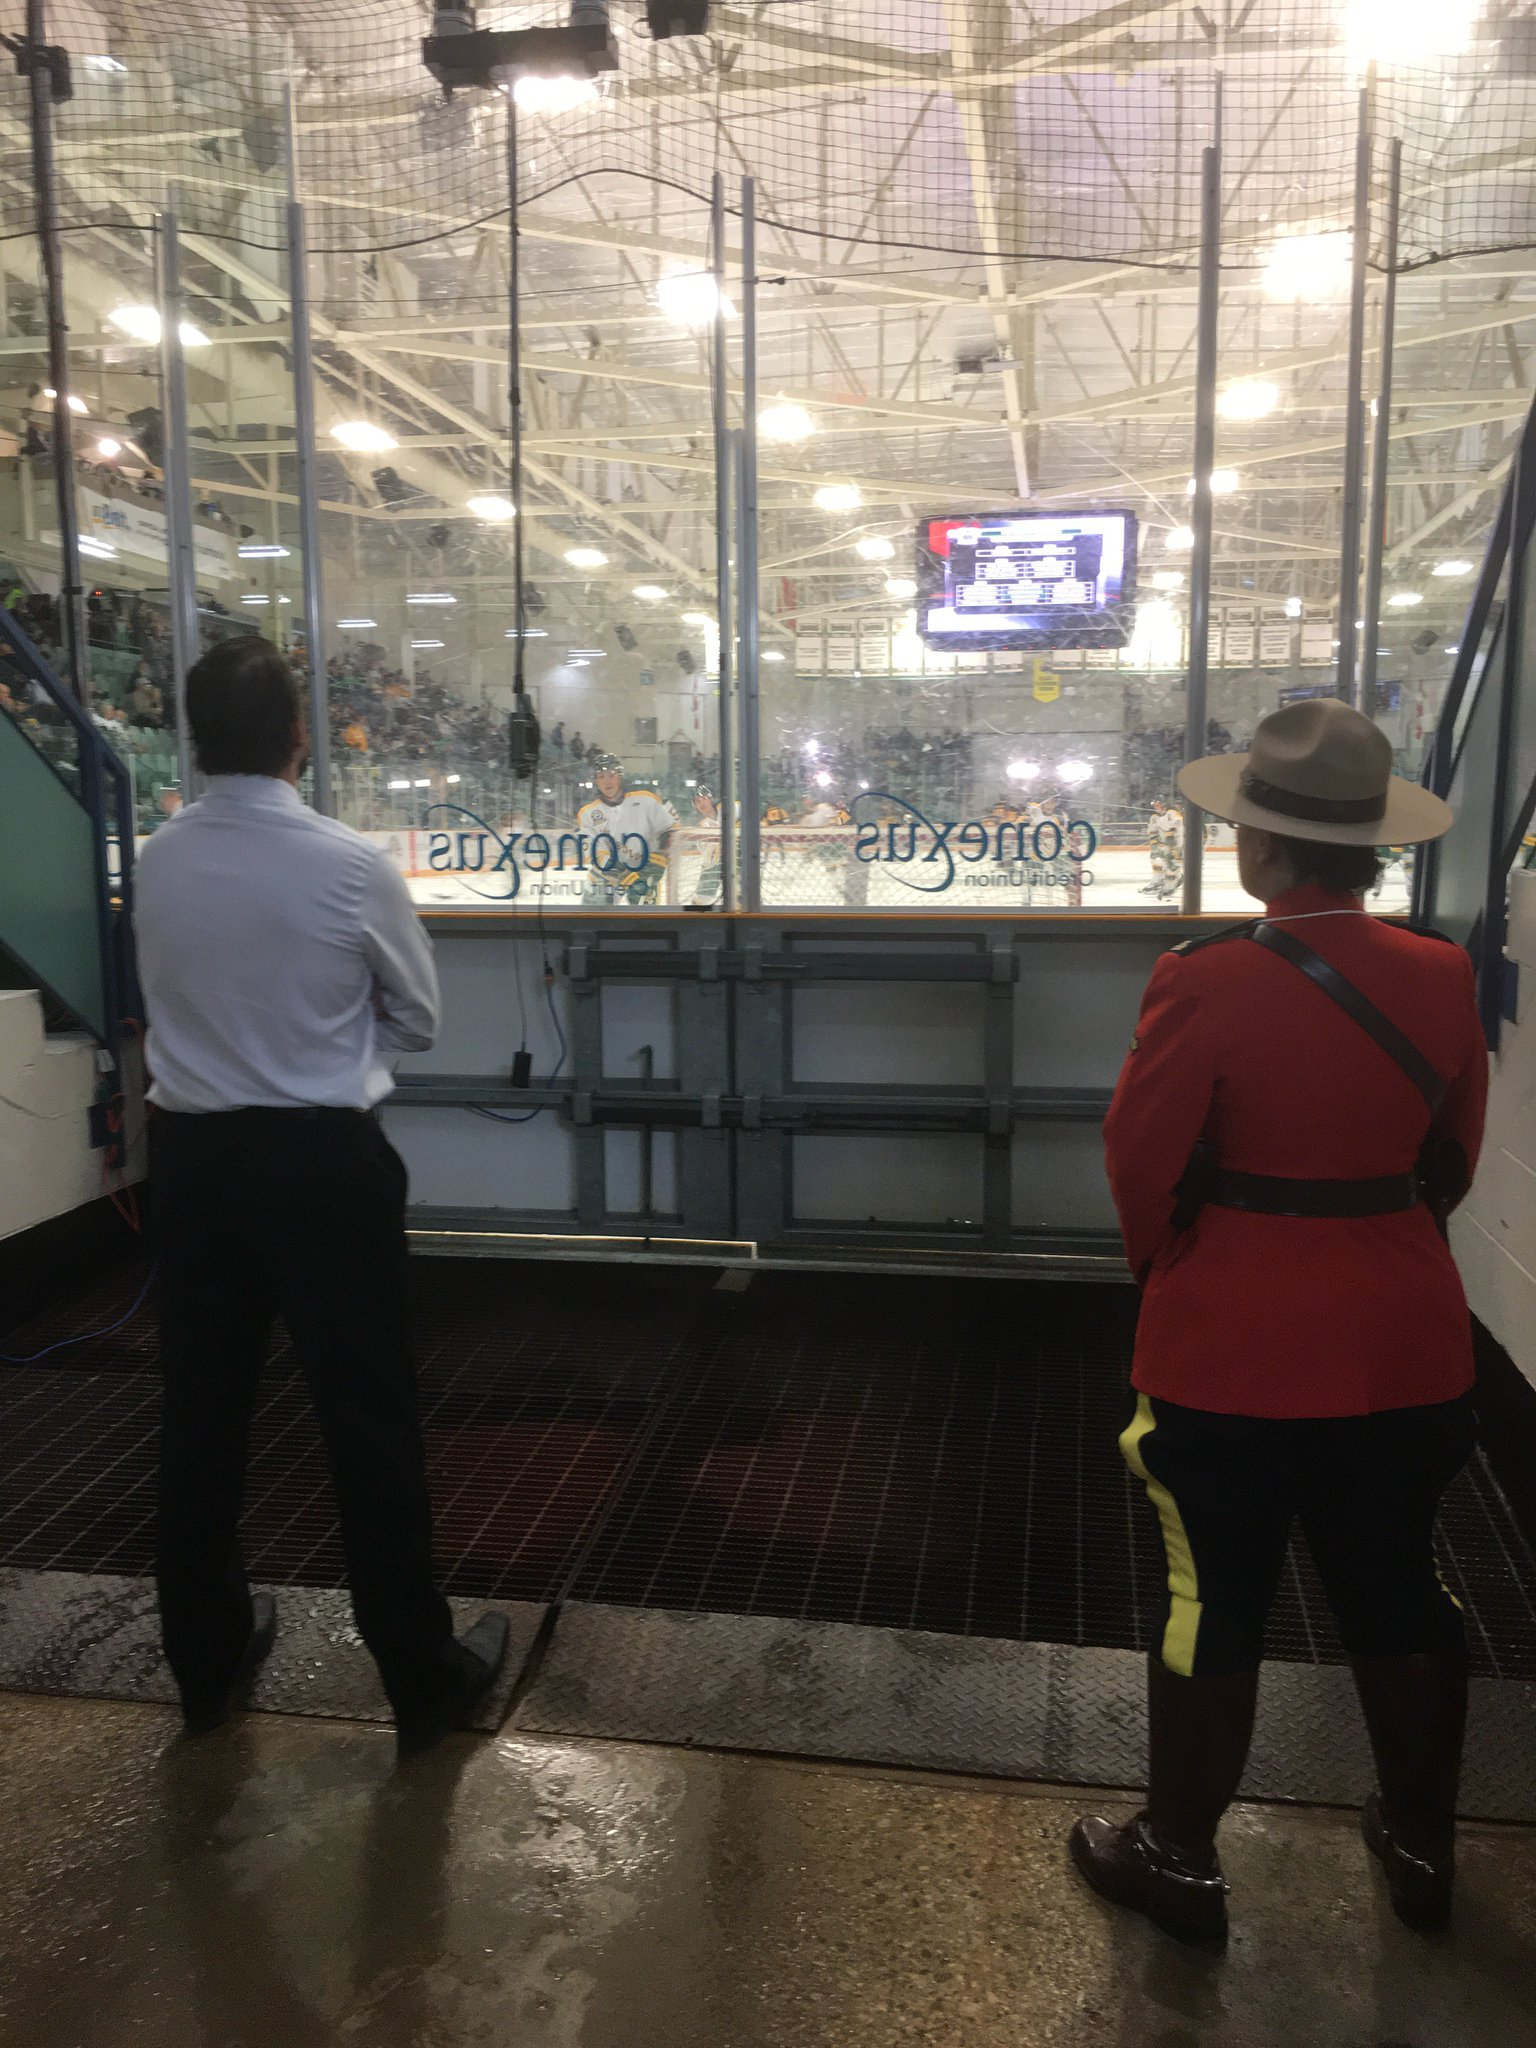 Broncos' coach Nathan Oystrick finds his focus as the boys warm up for 6:45 puck drop. Go Broncos! #humboldtstrong https://t.co/mngRDcIaVL